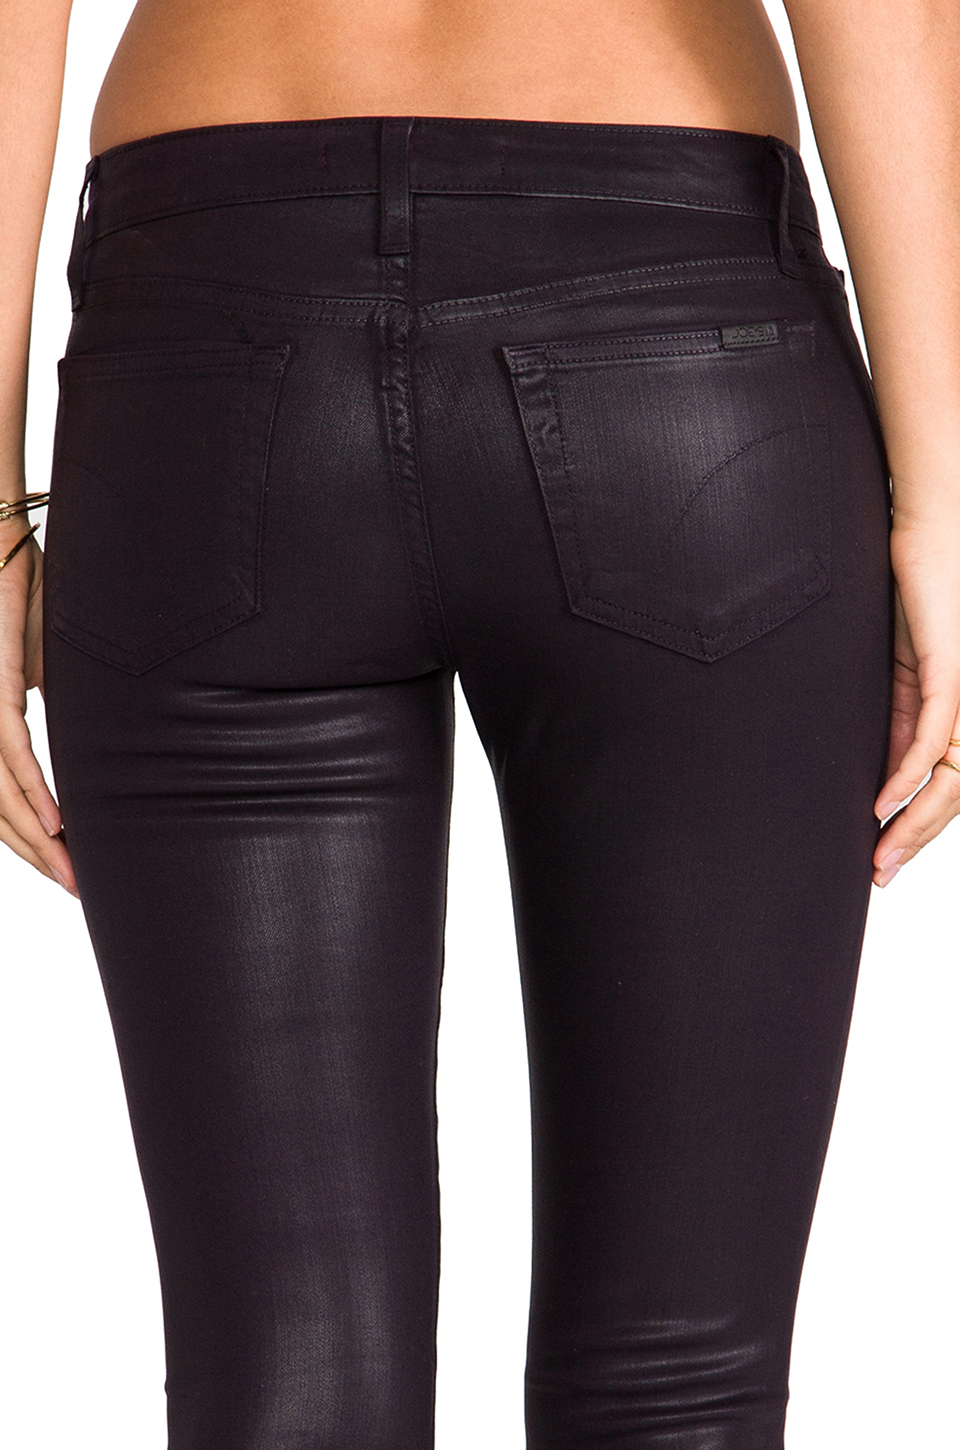 59942d0b9b Gallery. Previously sold at: REVOLVE · Women's Black Jeans Women's Black Skinny  Jeans